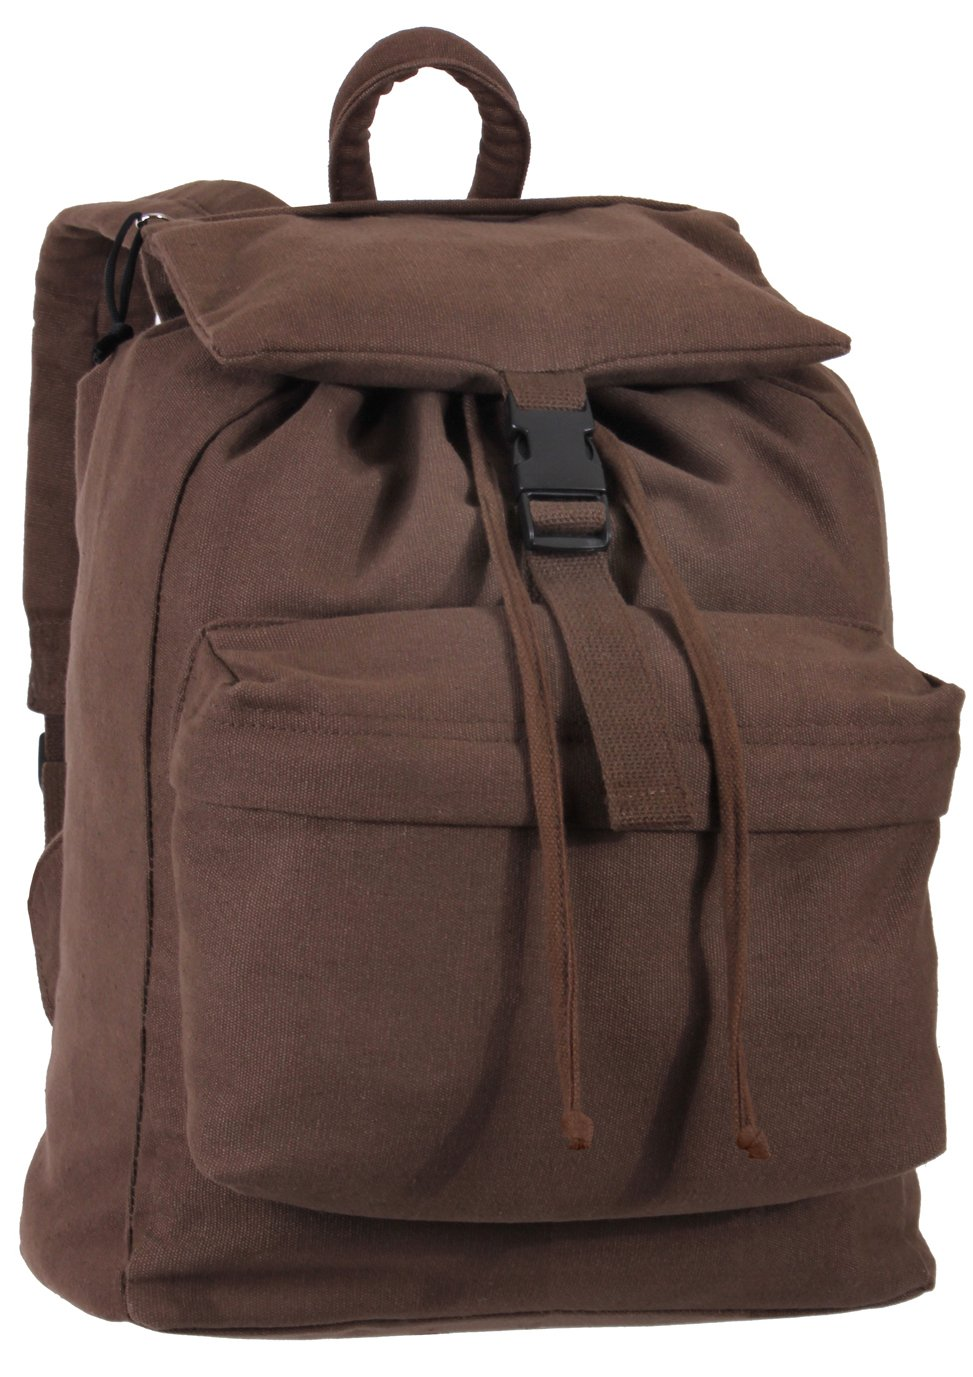 Direct 2169 Rothco Canvas Daypack Olive Drab Pro-Motion Distributing